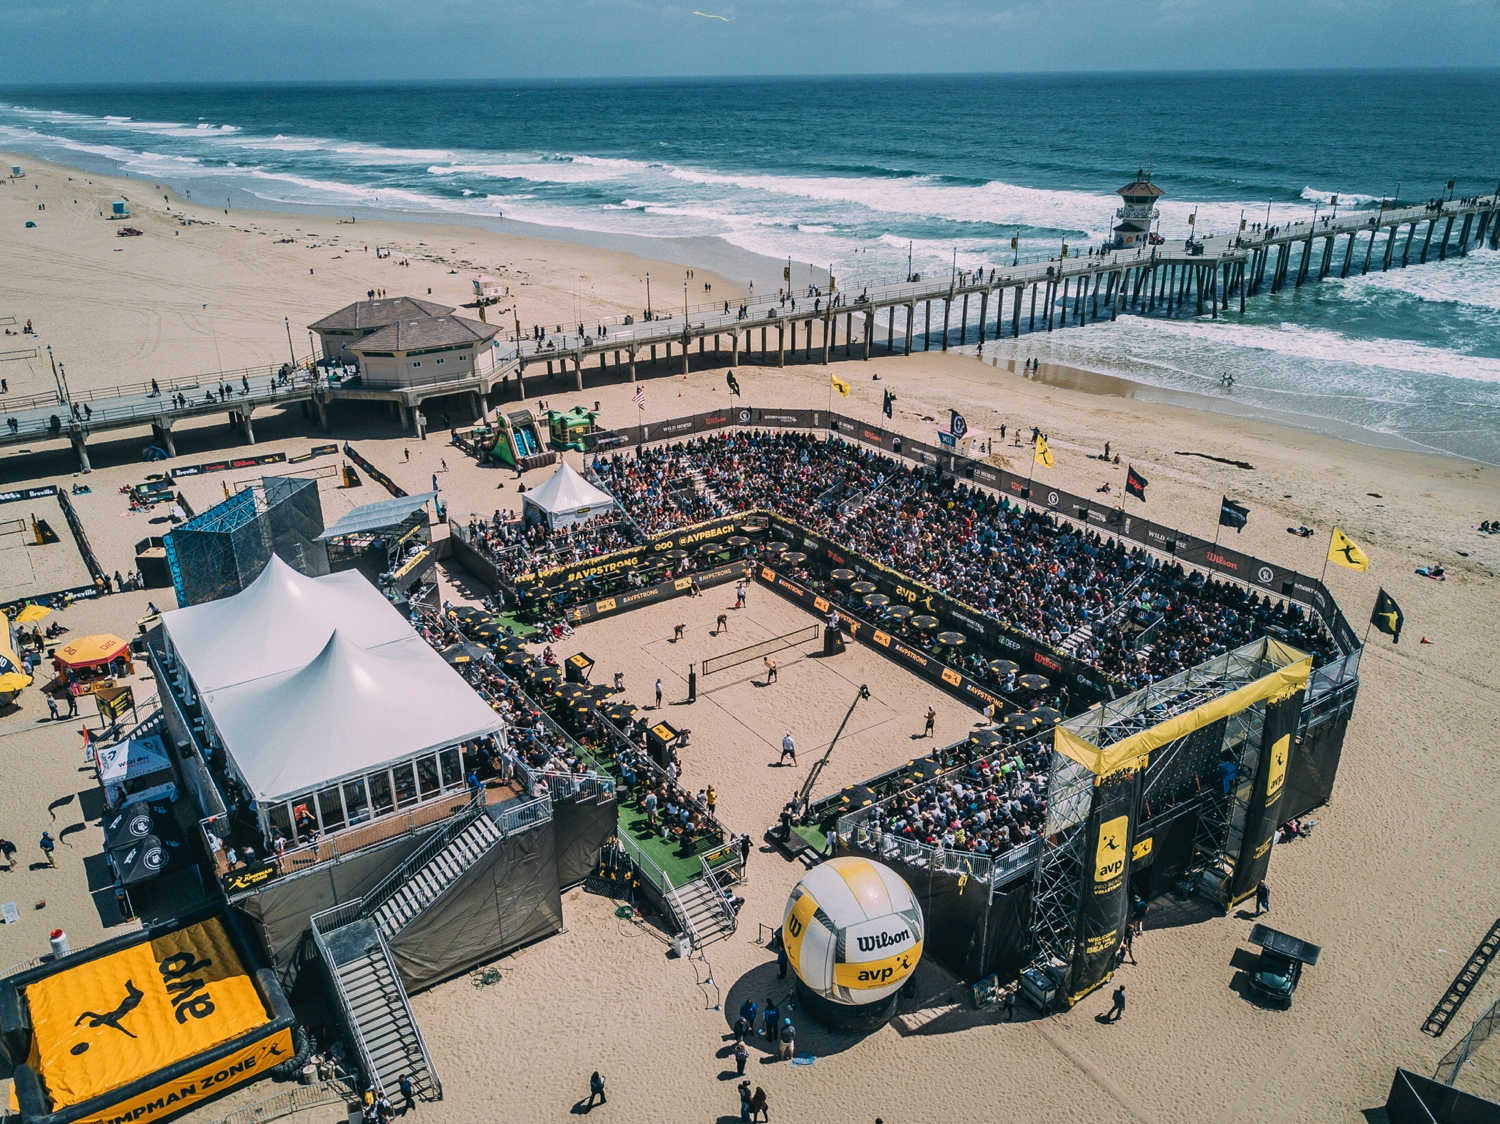 AVP_Huntington Beach_14